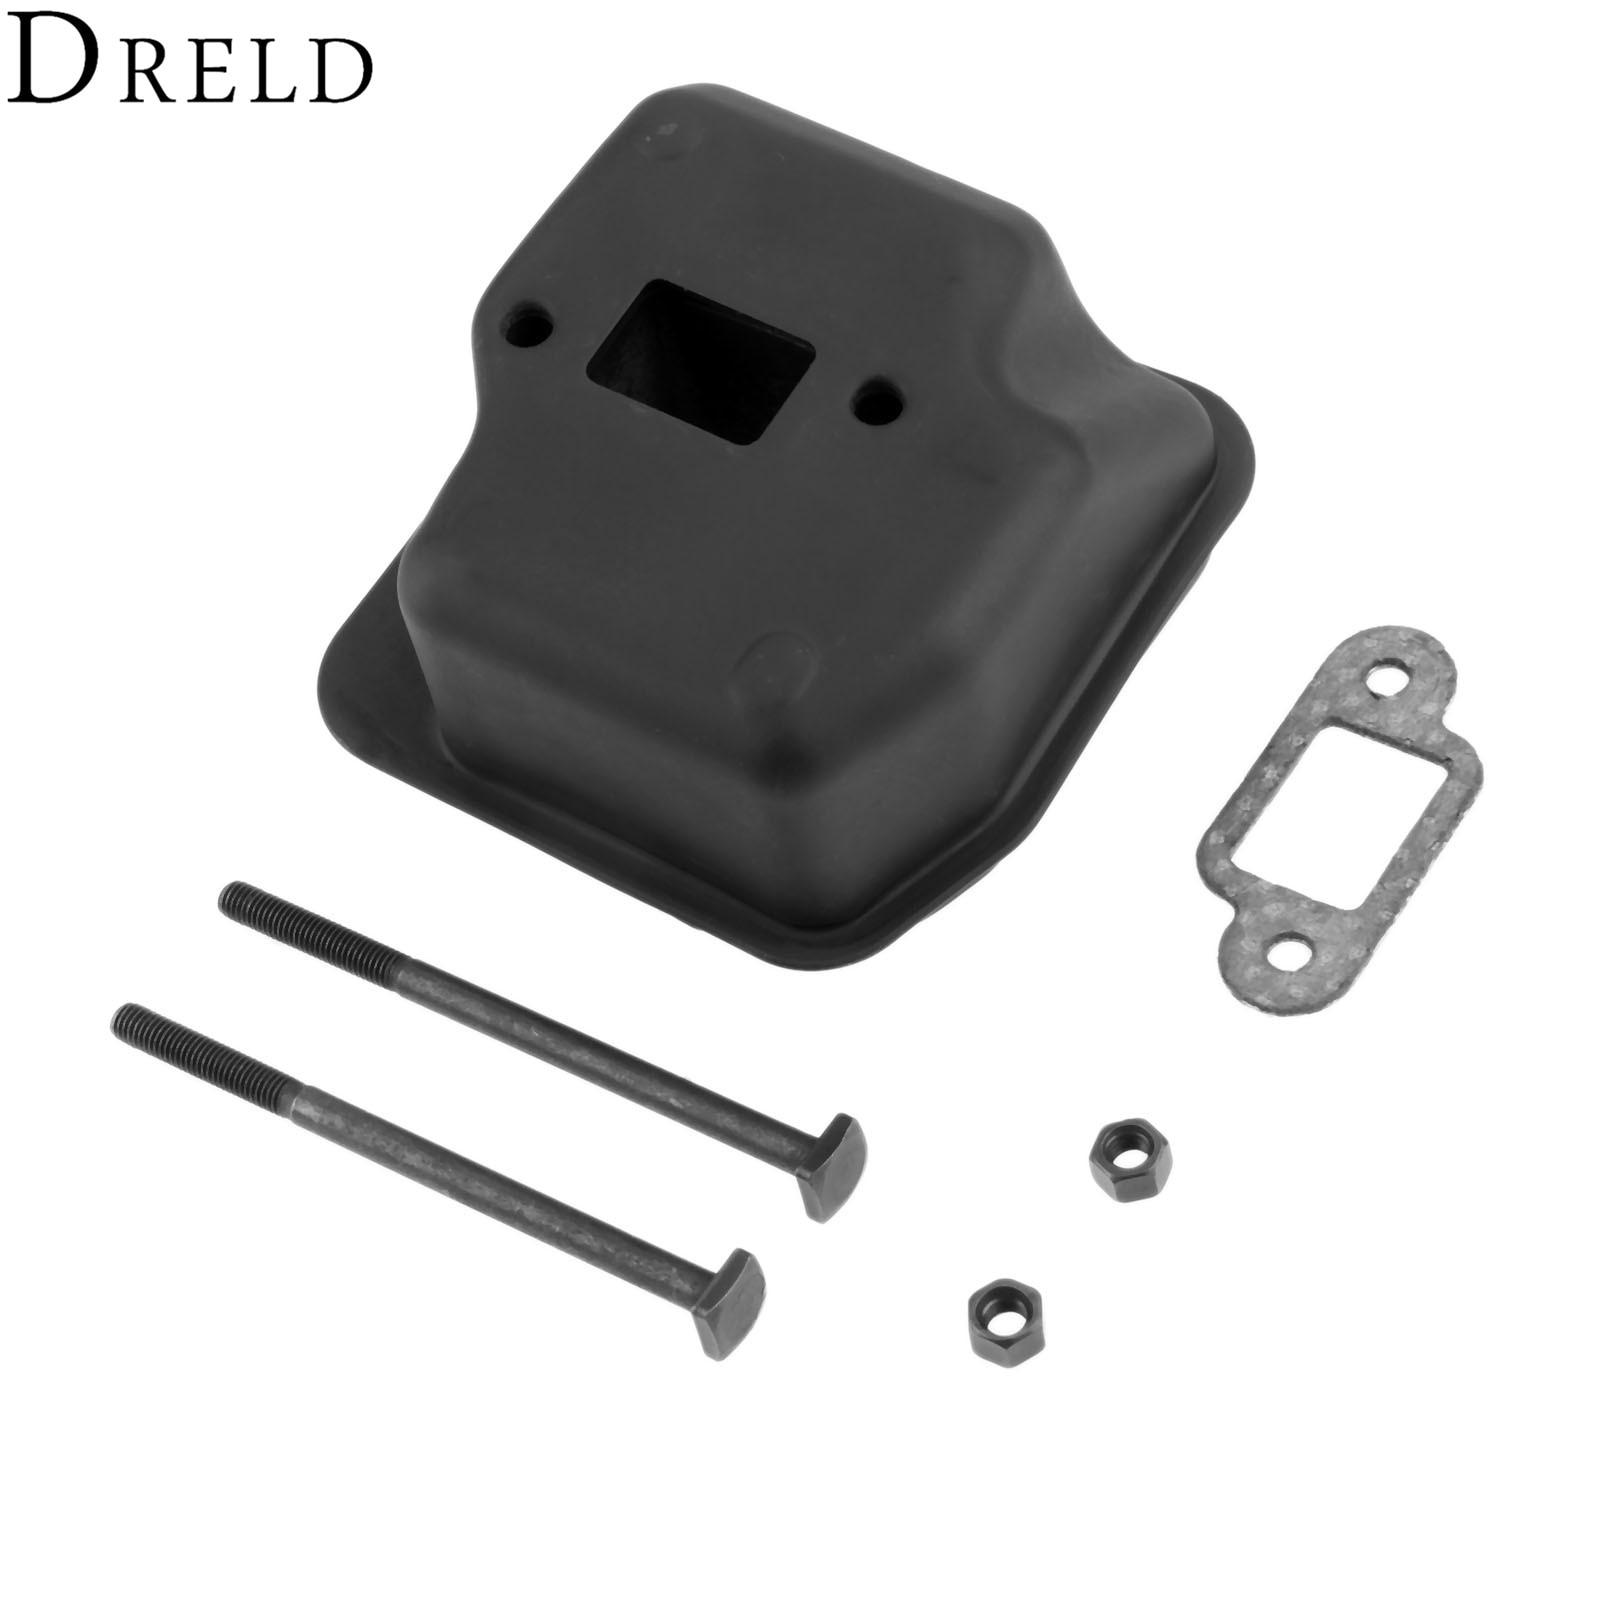 DRELD Chainsaw Muffler with Bolts Gasket Sprocket Cover for STIHL MS250 025 021 210 023 230 Chainsaw Replacement 1123 140 0608